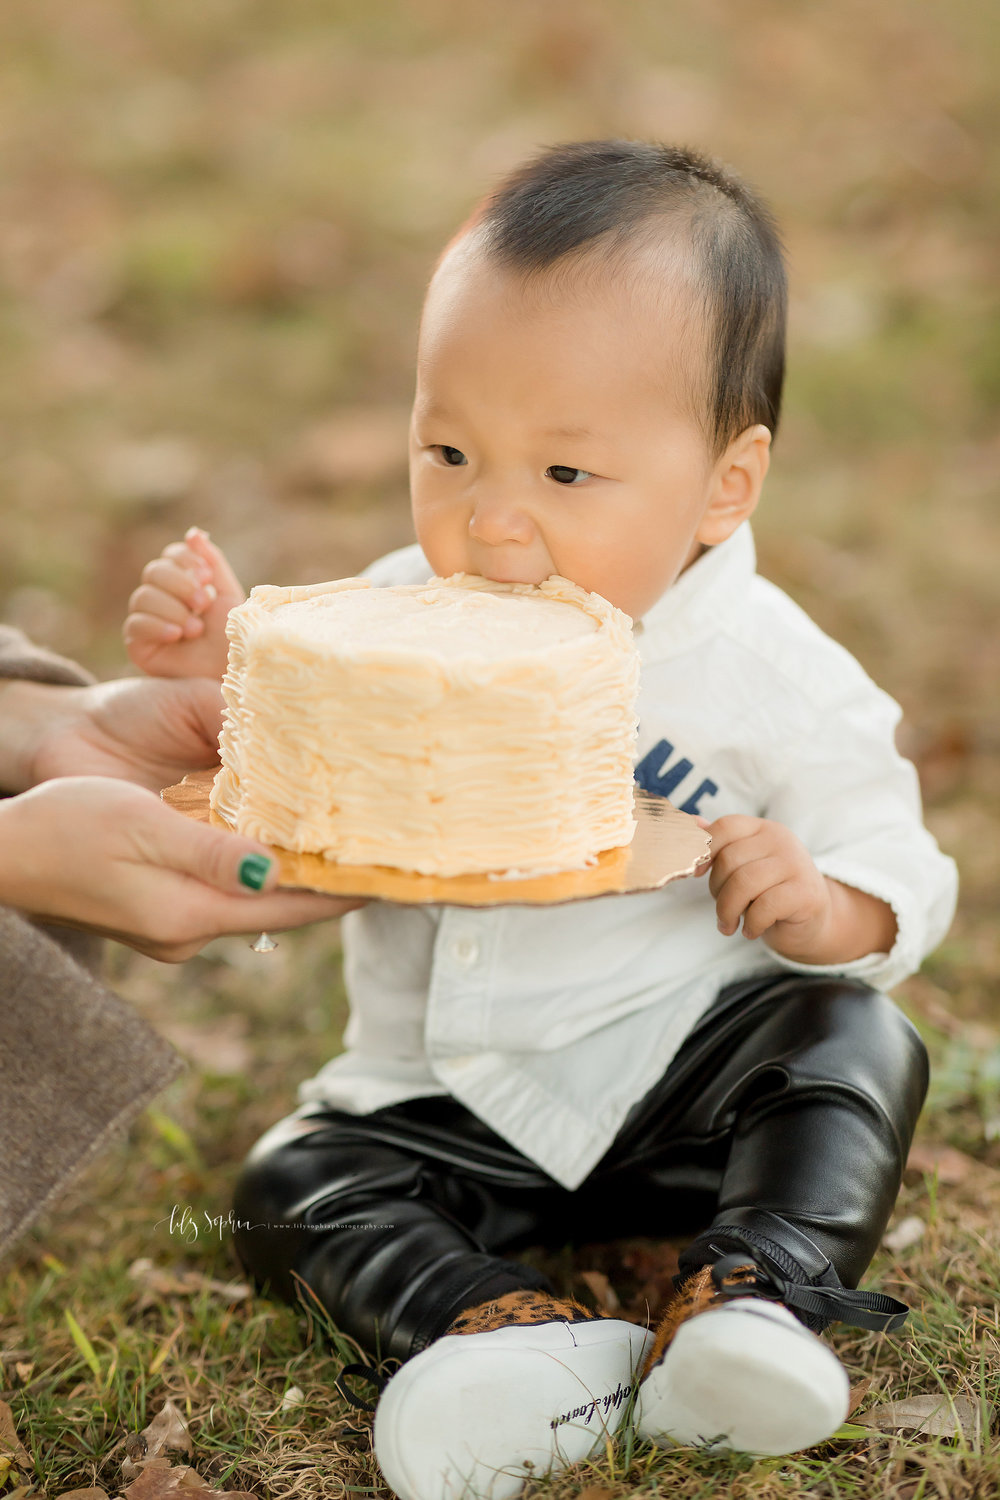 atlanta-buckhead-brookhaven-decatur-lily-sophia-photography--photographer-portraits-grant-park-intown-park-sunset-first-birthday-cake-smash-one-year-old-outdoors-cool-asian-american-family_0094.jpg